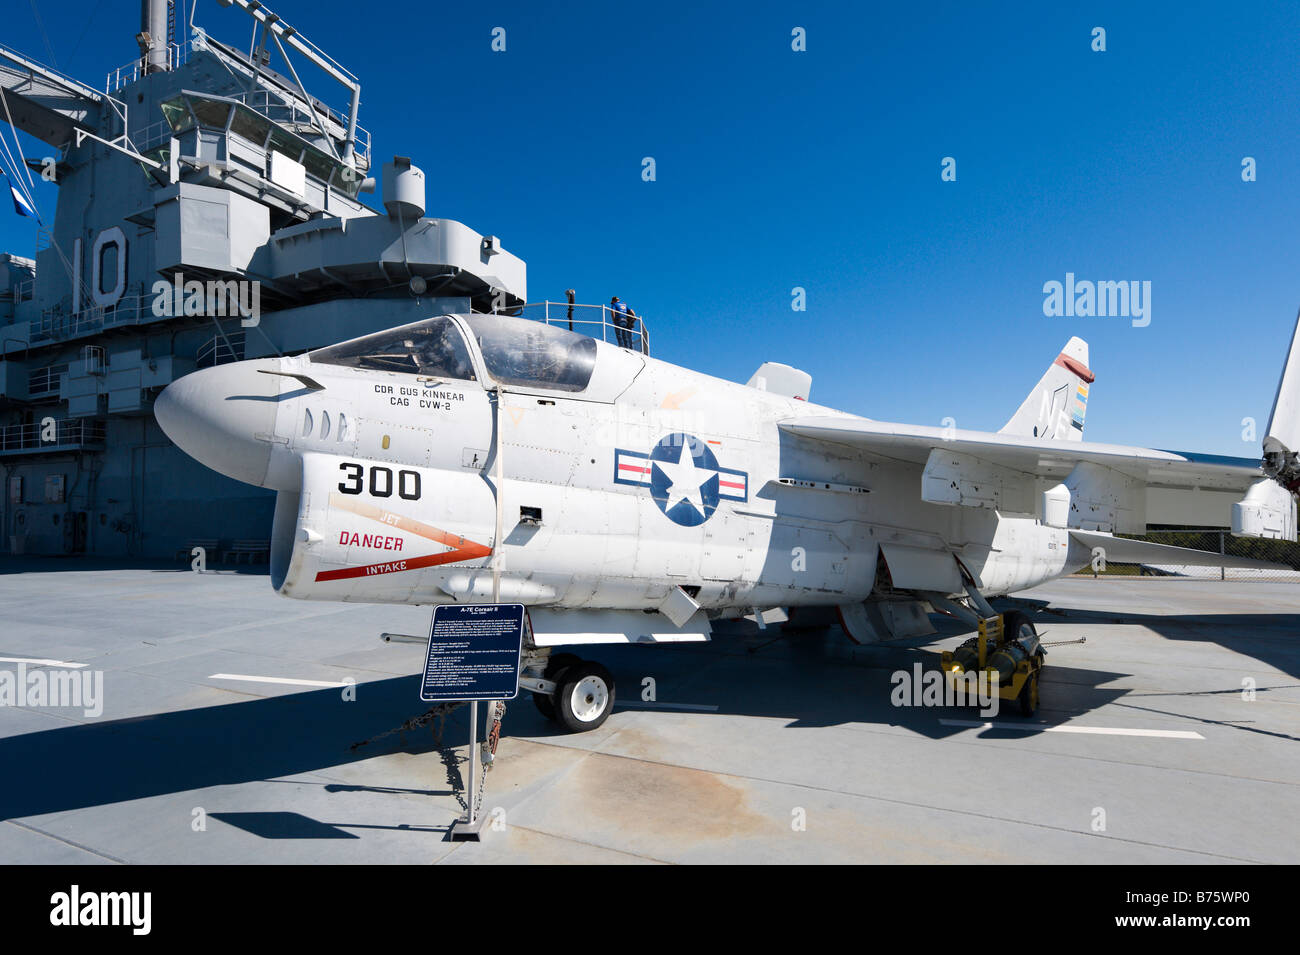 A-7E Corsair light attack aircraft on deck of USS Yorktown aircraft carrier, Patriots Point Naval Museum, Charleston - Stock Image